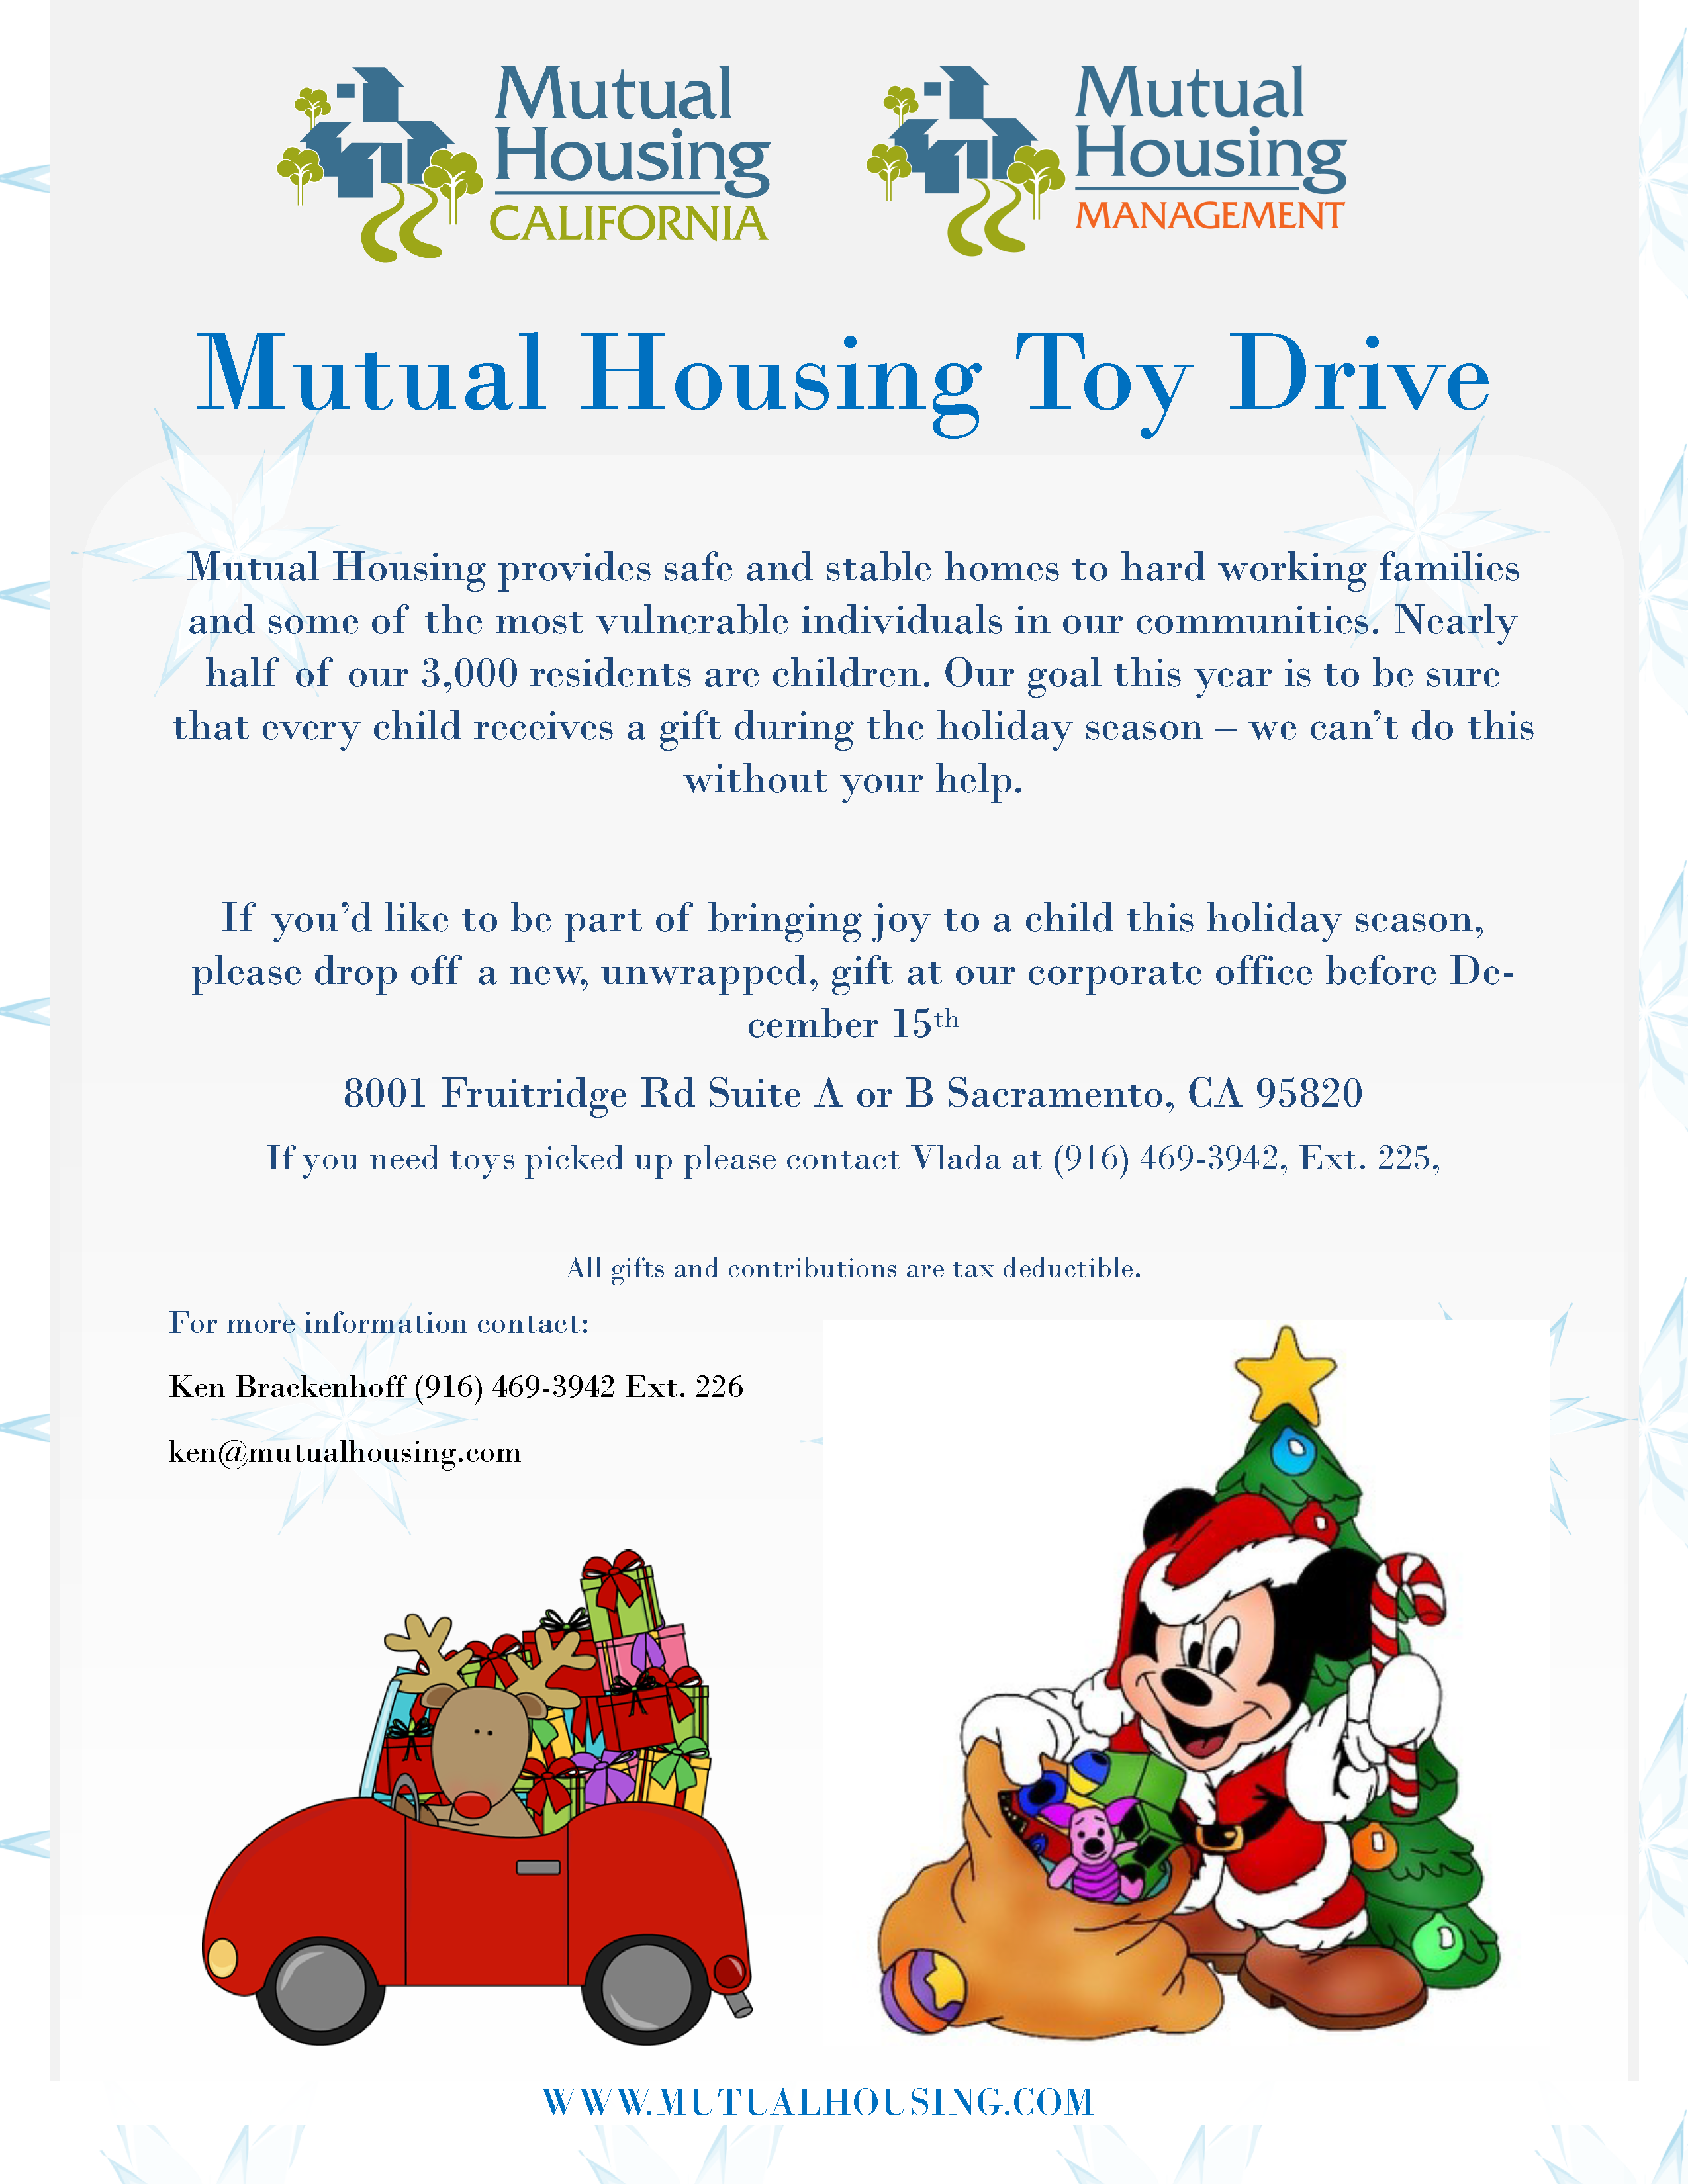 2017 Mutual Housing Toy Drive flyer